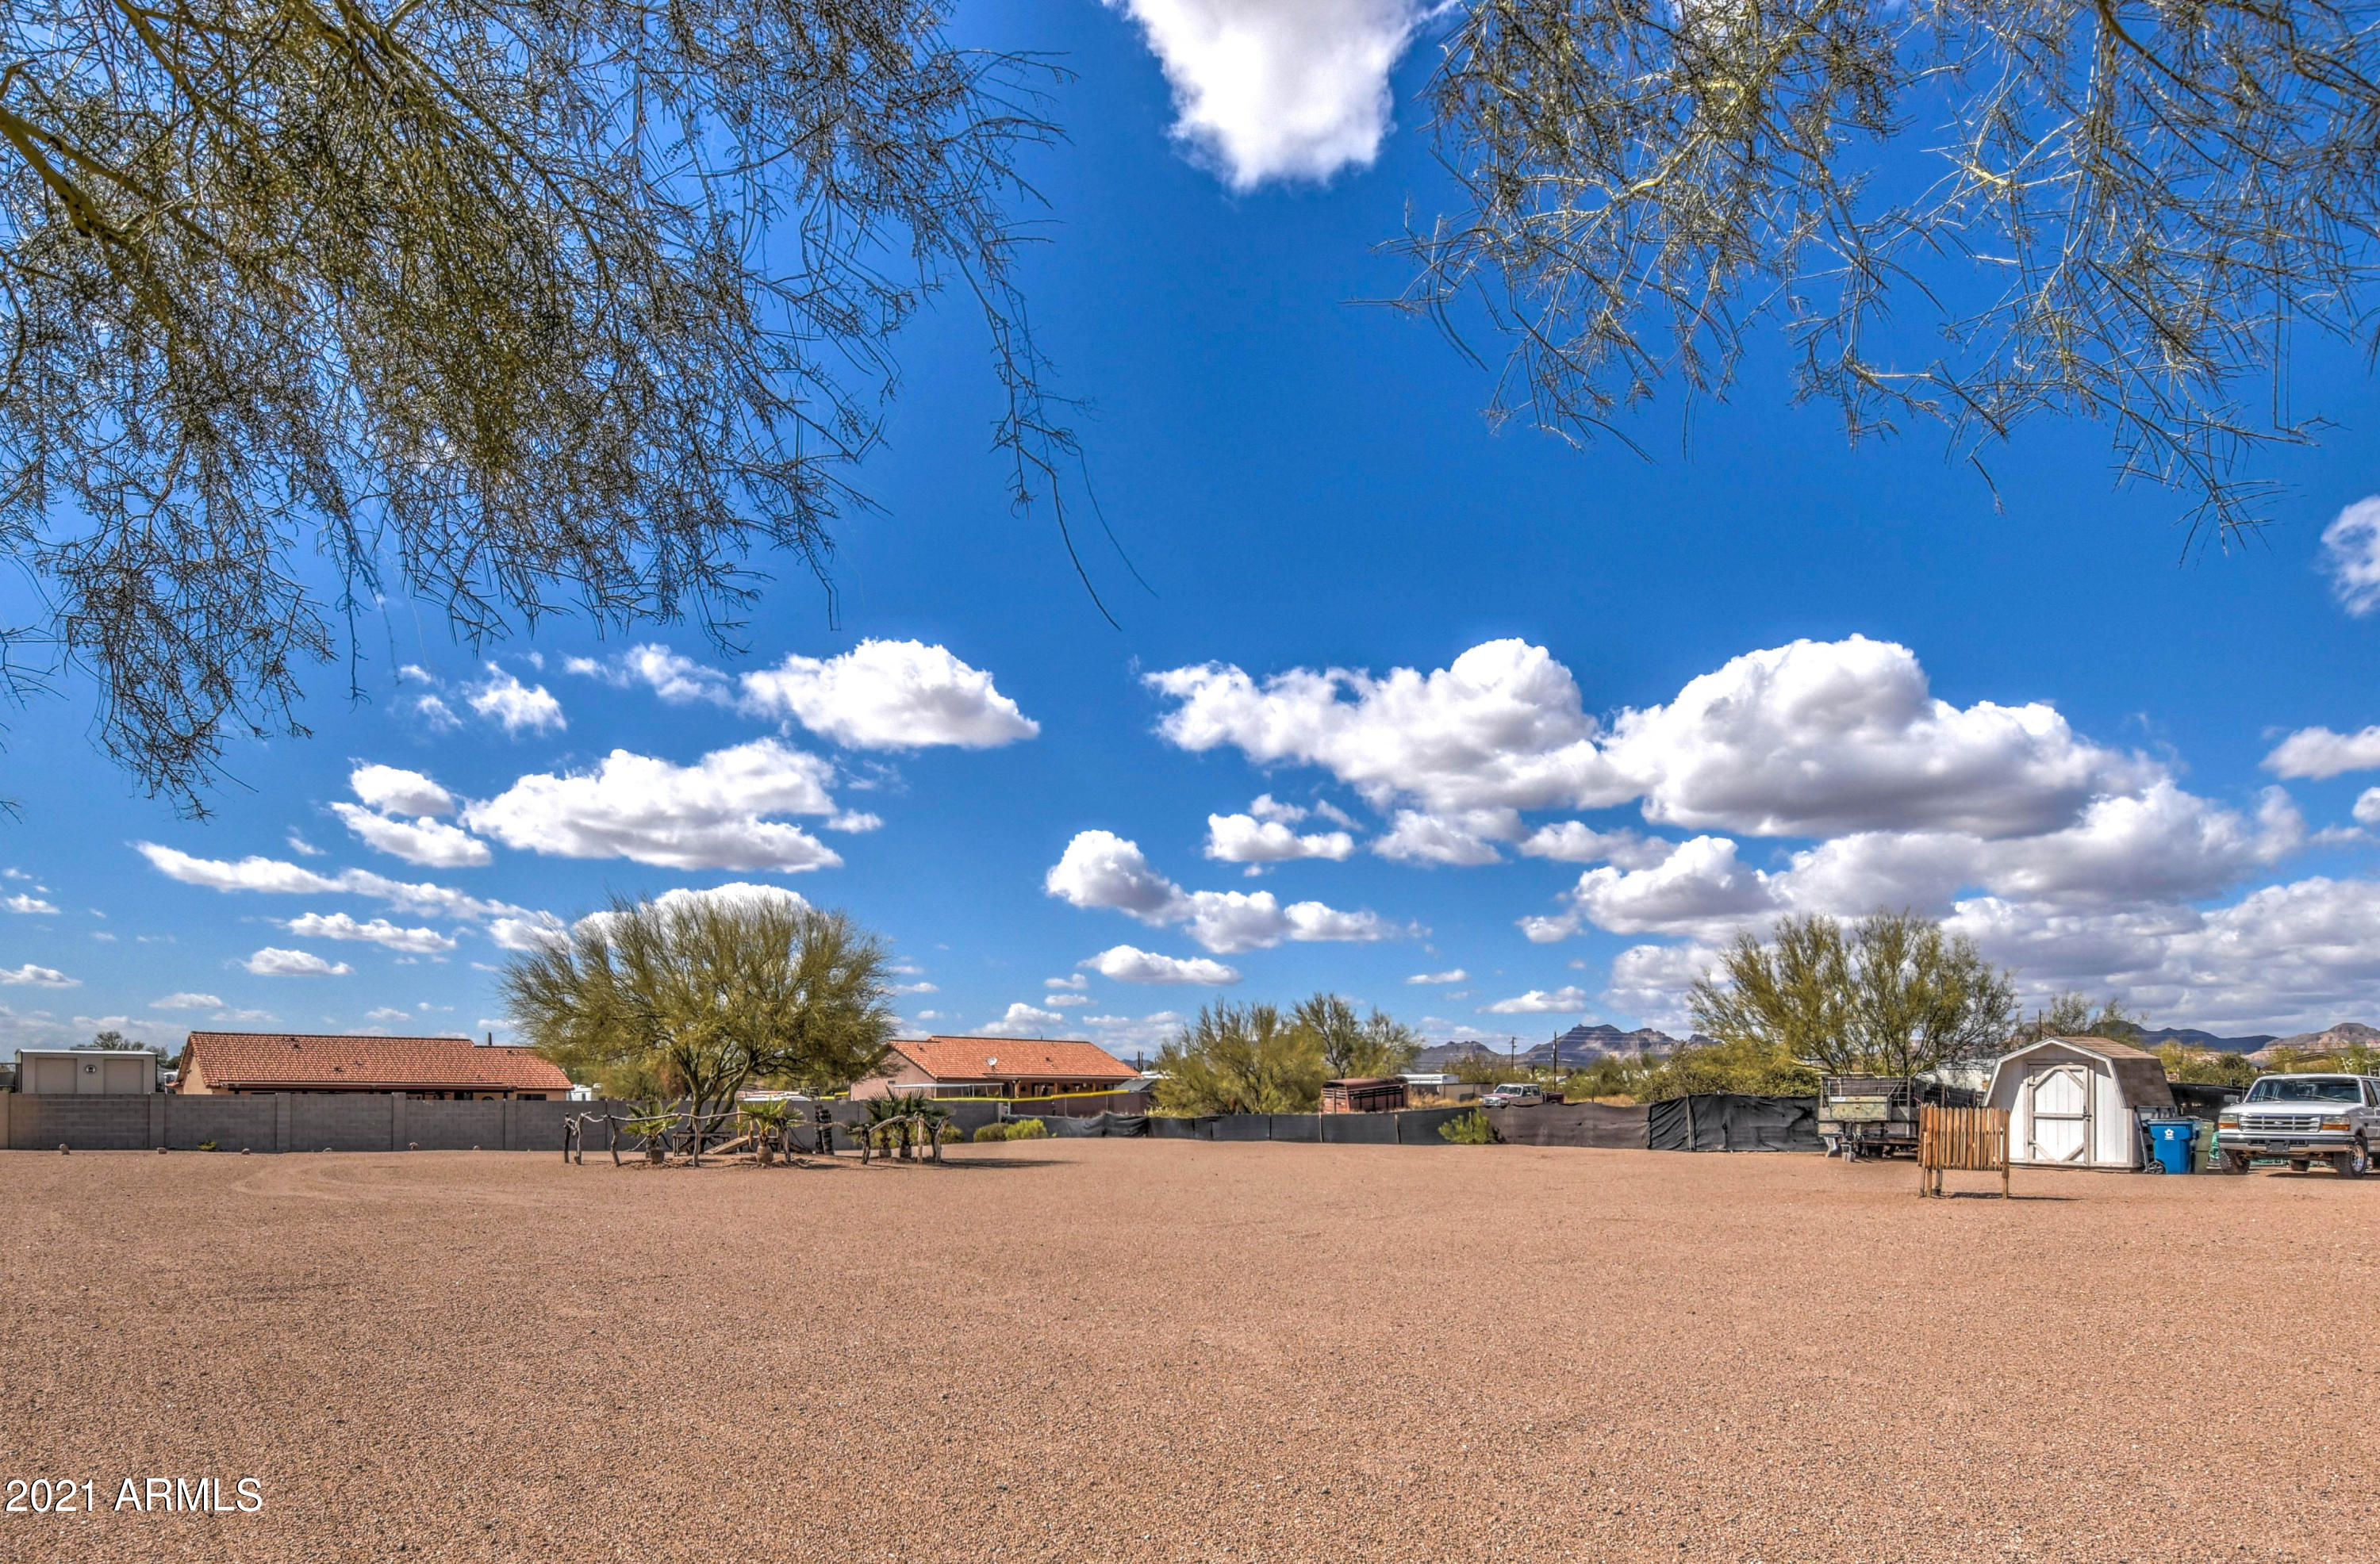 160 S Acacia Road, Apache Junction, Arizona 85119, 2 Bedrooms Bedrooms, ,1 BathroomBathrooms,Residential,For Sale,160 S Acacia Road,1,6208516